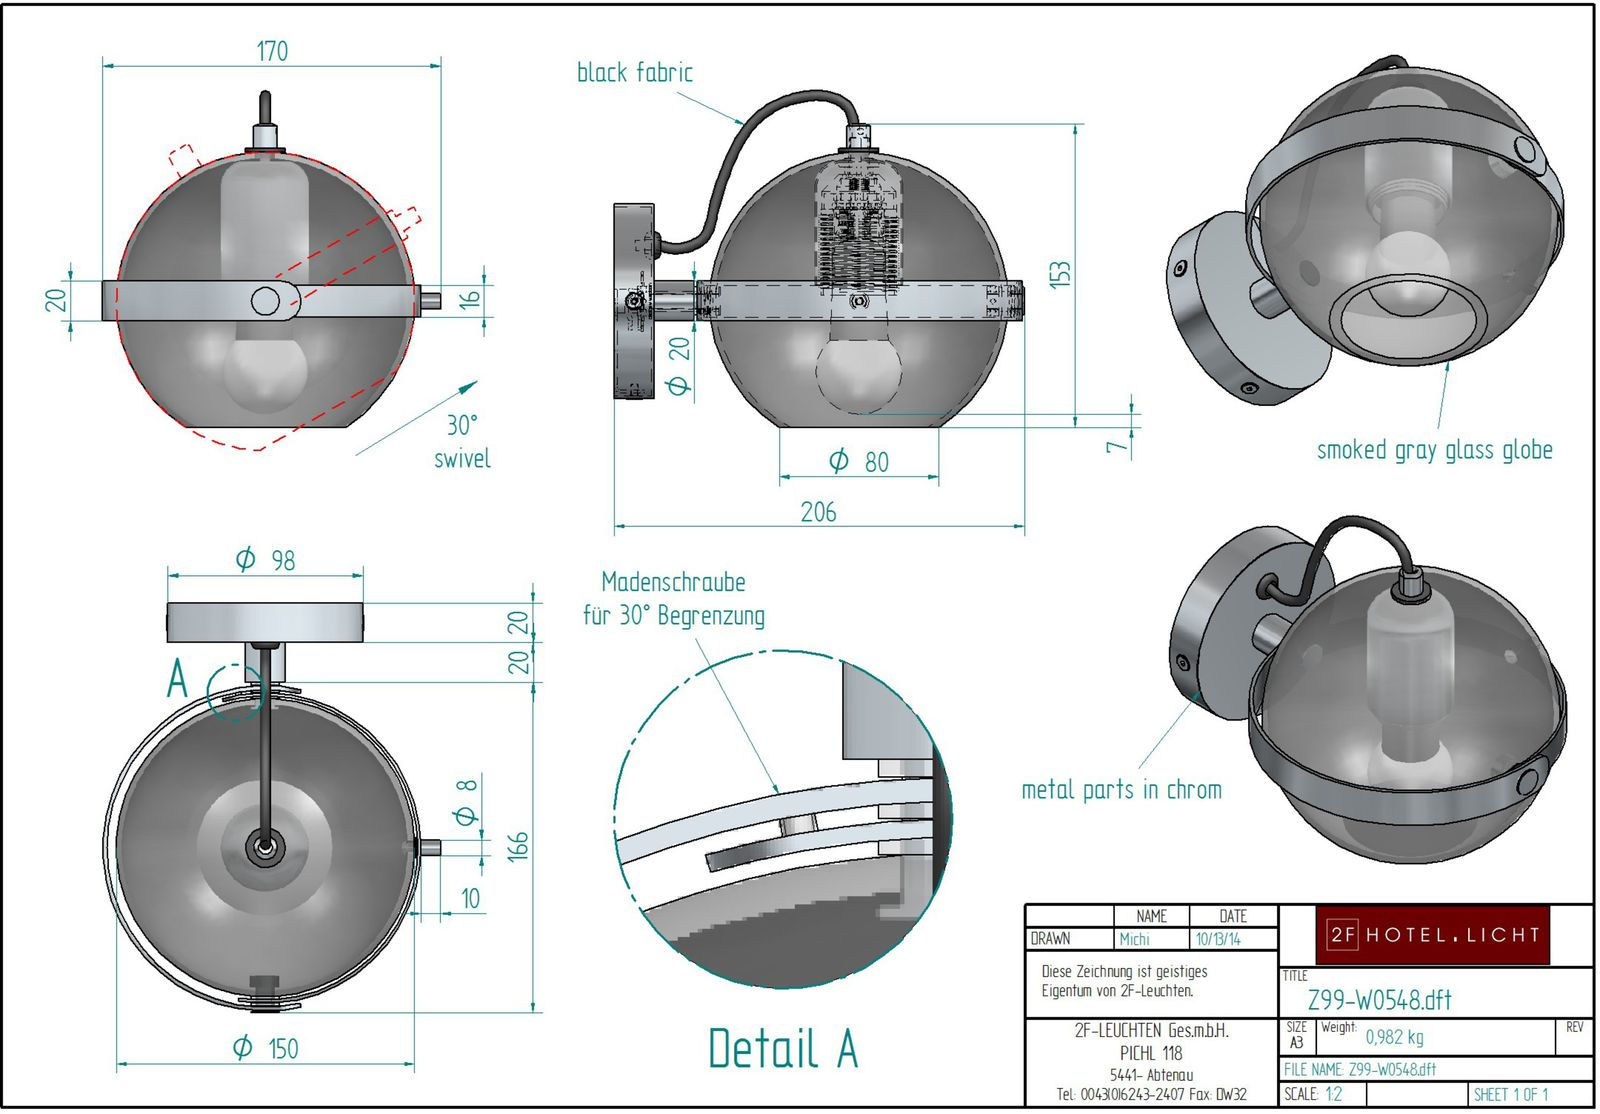 wall, movable, smoked gray glass globe L:203, B:169, H:152 Metall:metal parts in chrom, Fassung: 1x E27,  Leuchtmittel: 1x max. 10W LED, Stecker: flat Europlug, Schalter: without switch Kabelfarbe: black fabric 1300mm